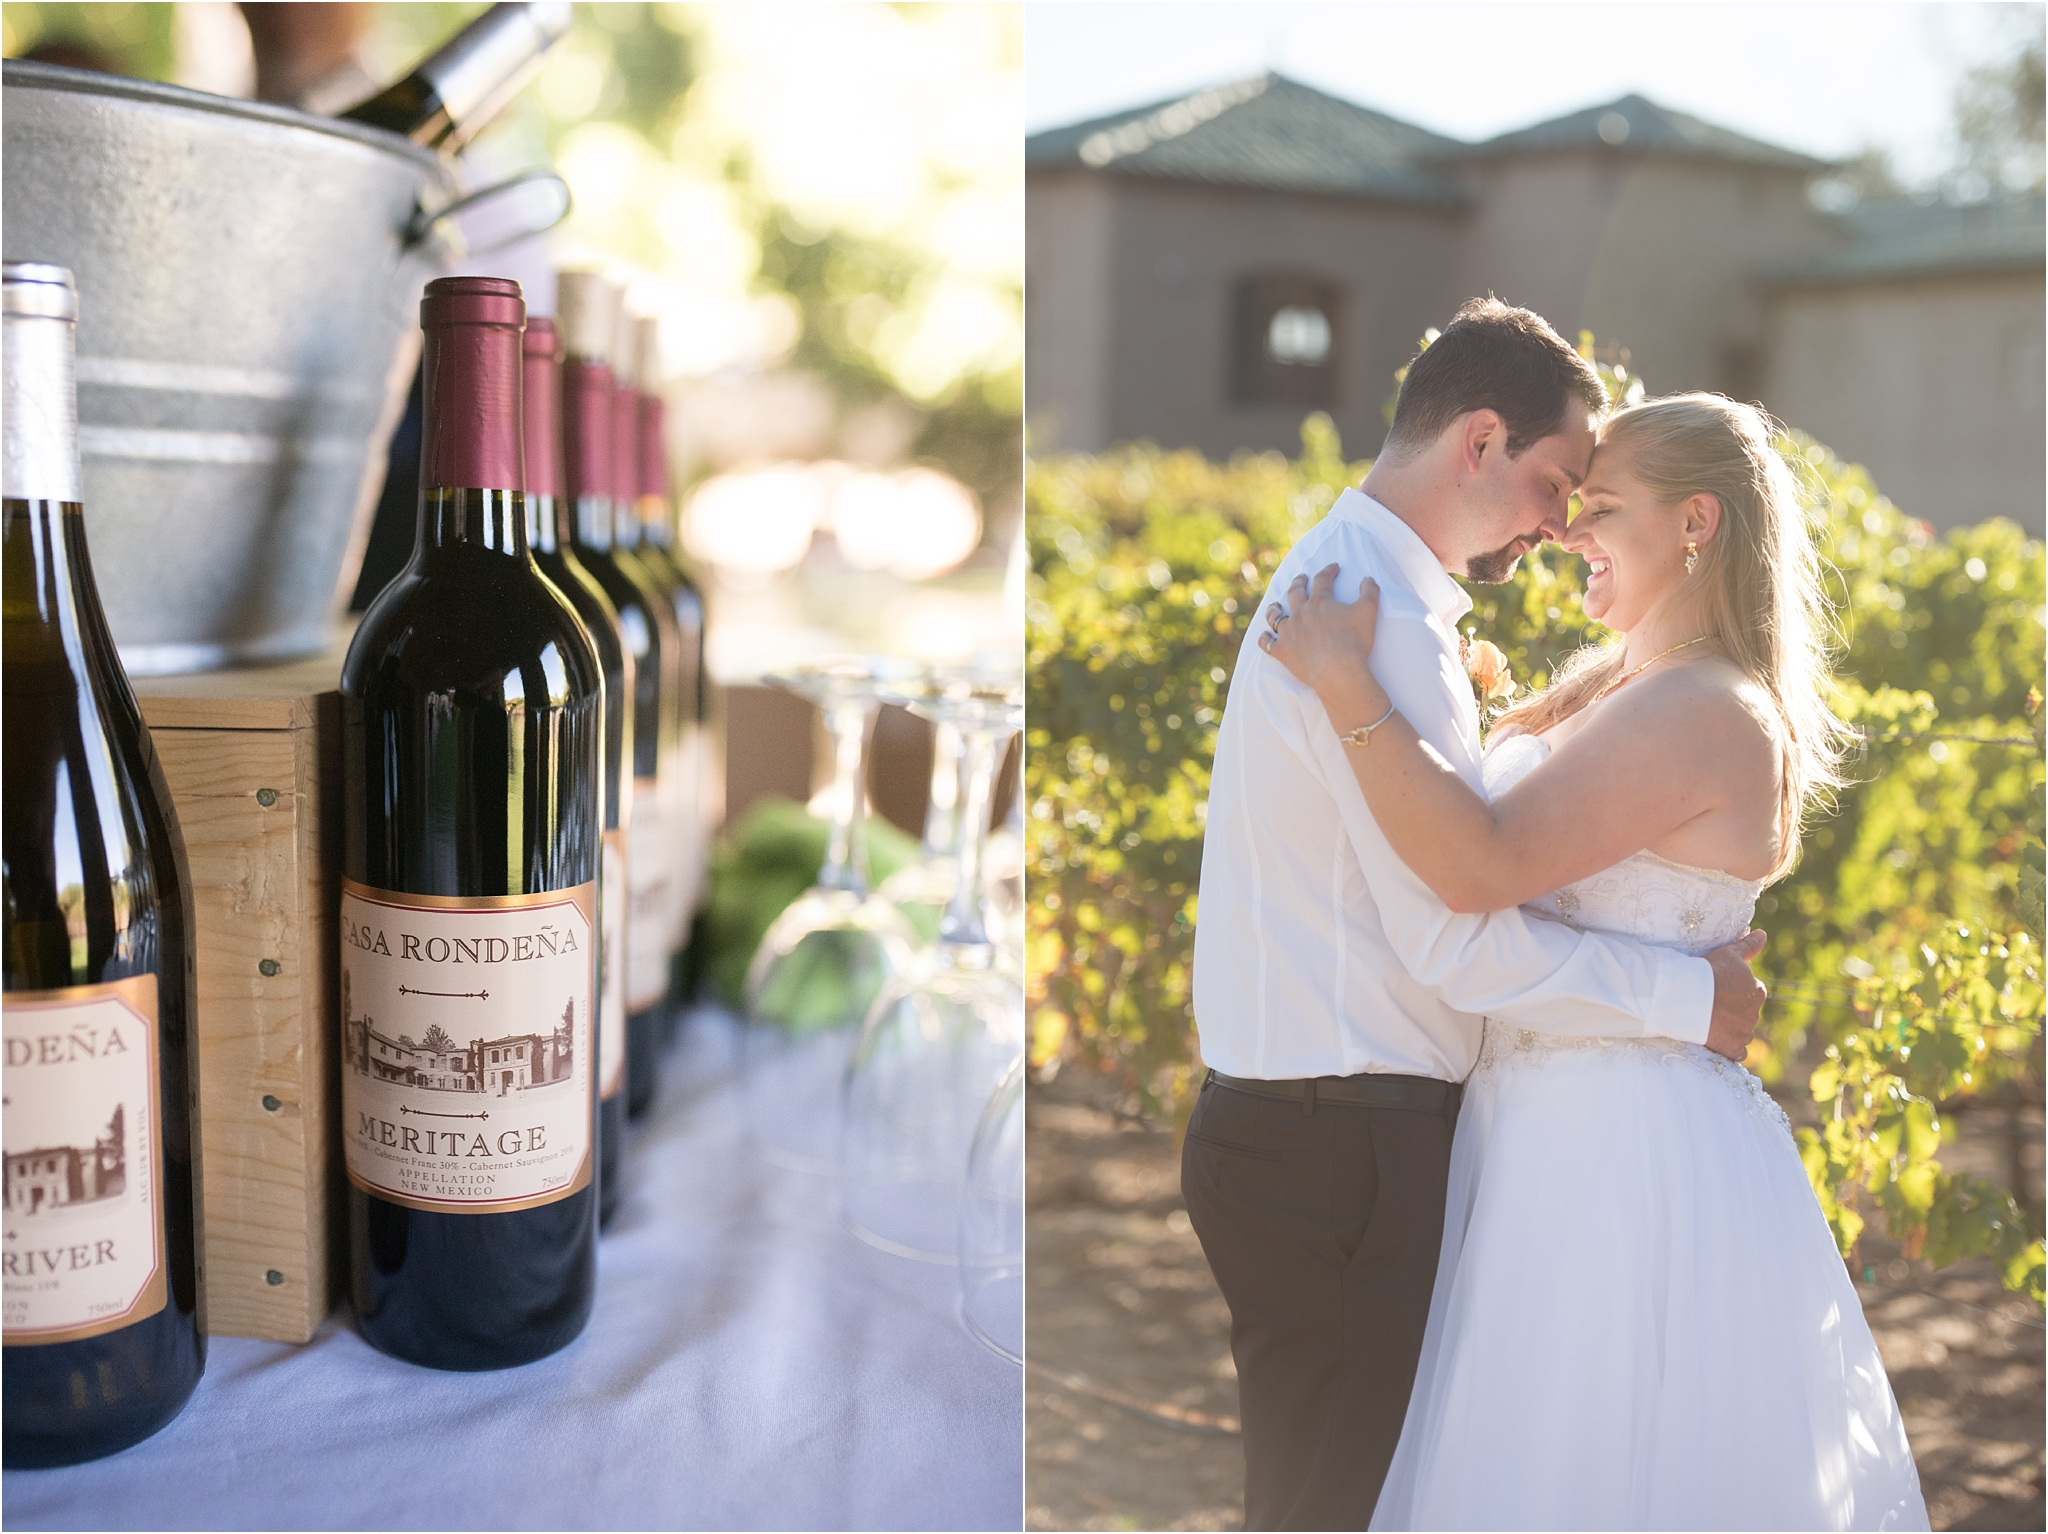 kayla kitts photography - albuquerque wedding photographer - new mexico wedding photographer - desination wedding photographer - cabo wedding photographer_0006.jpg